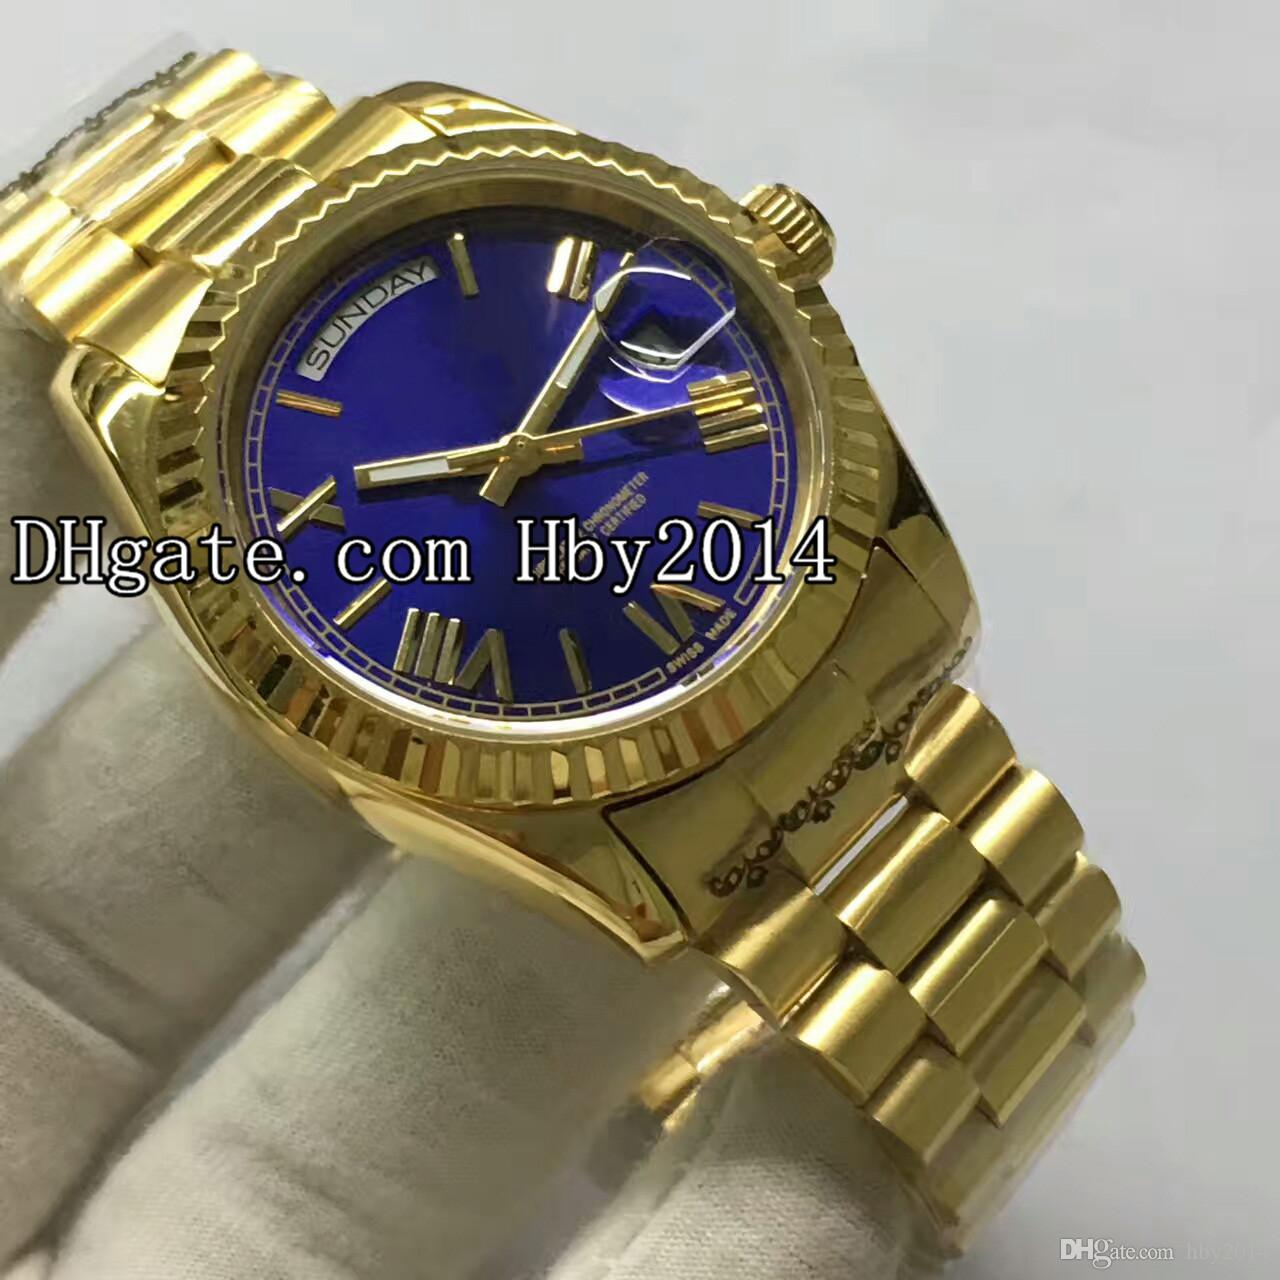 rolex click zrolex submariner to yellow above watches gold image enlarge